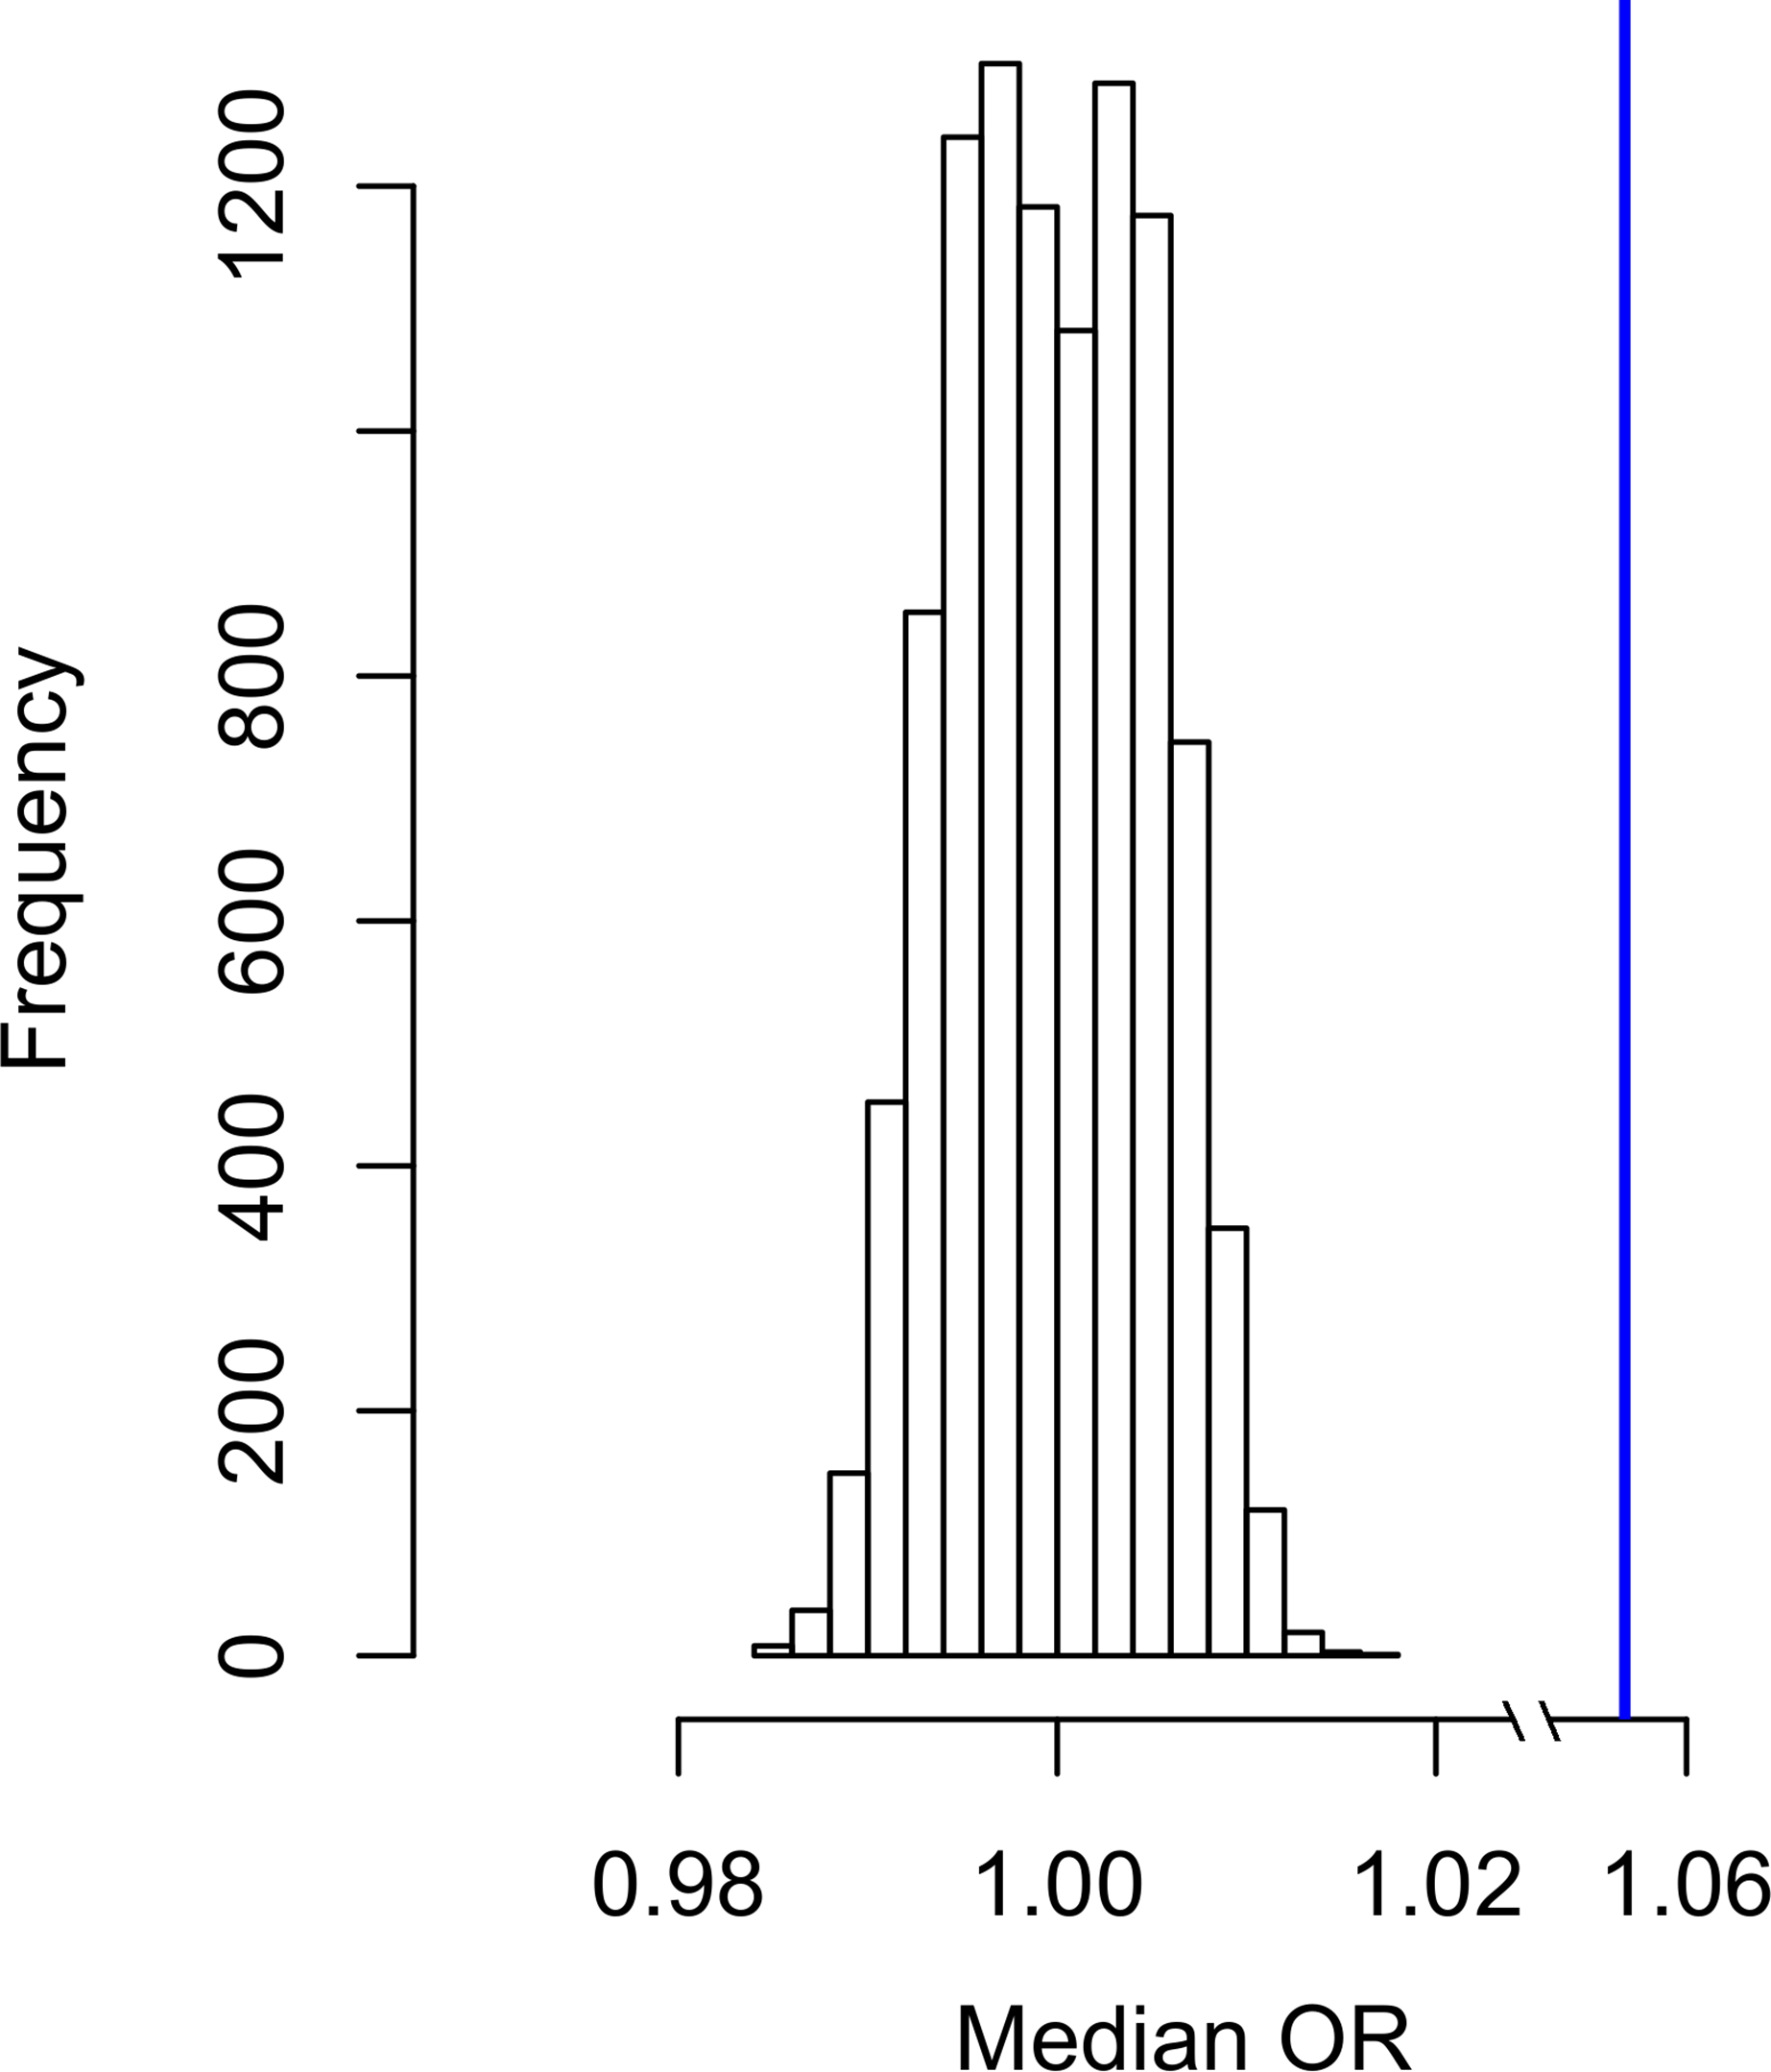 Null distribution of median OR (considering minor allele effect) generated from 10,000 permutations of ASD dataset.